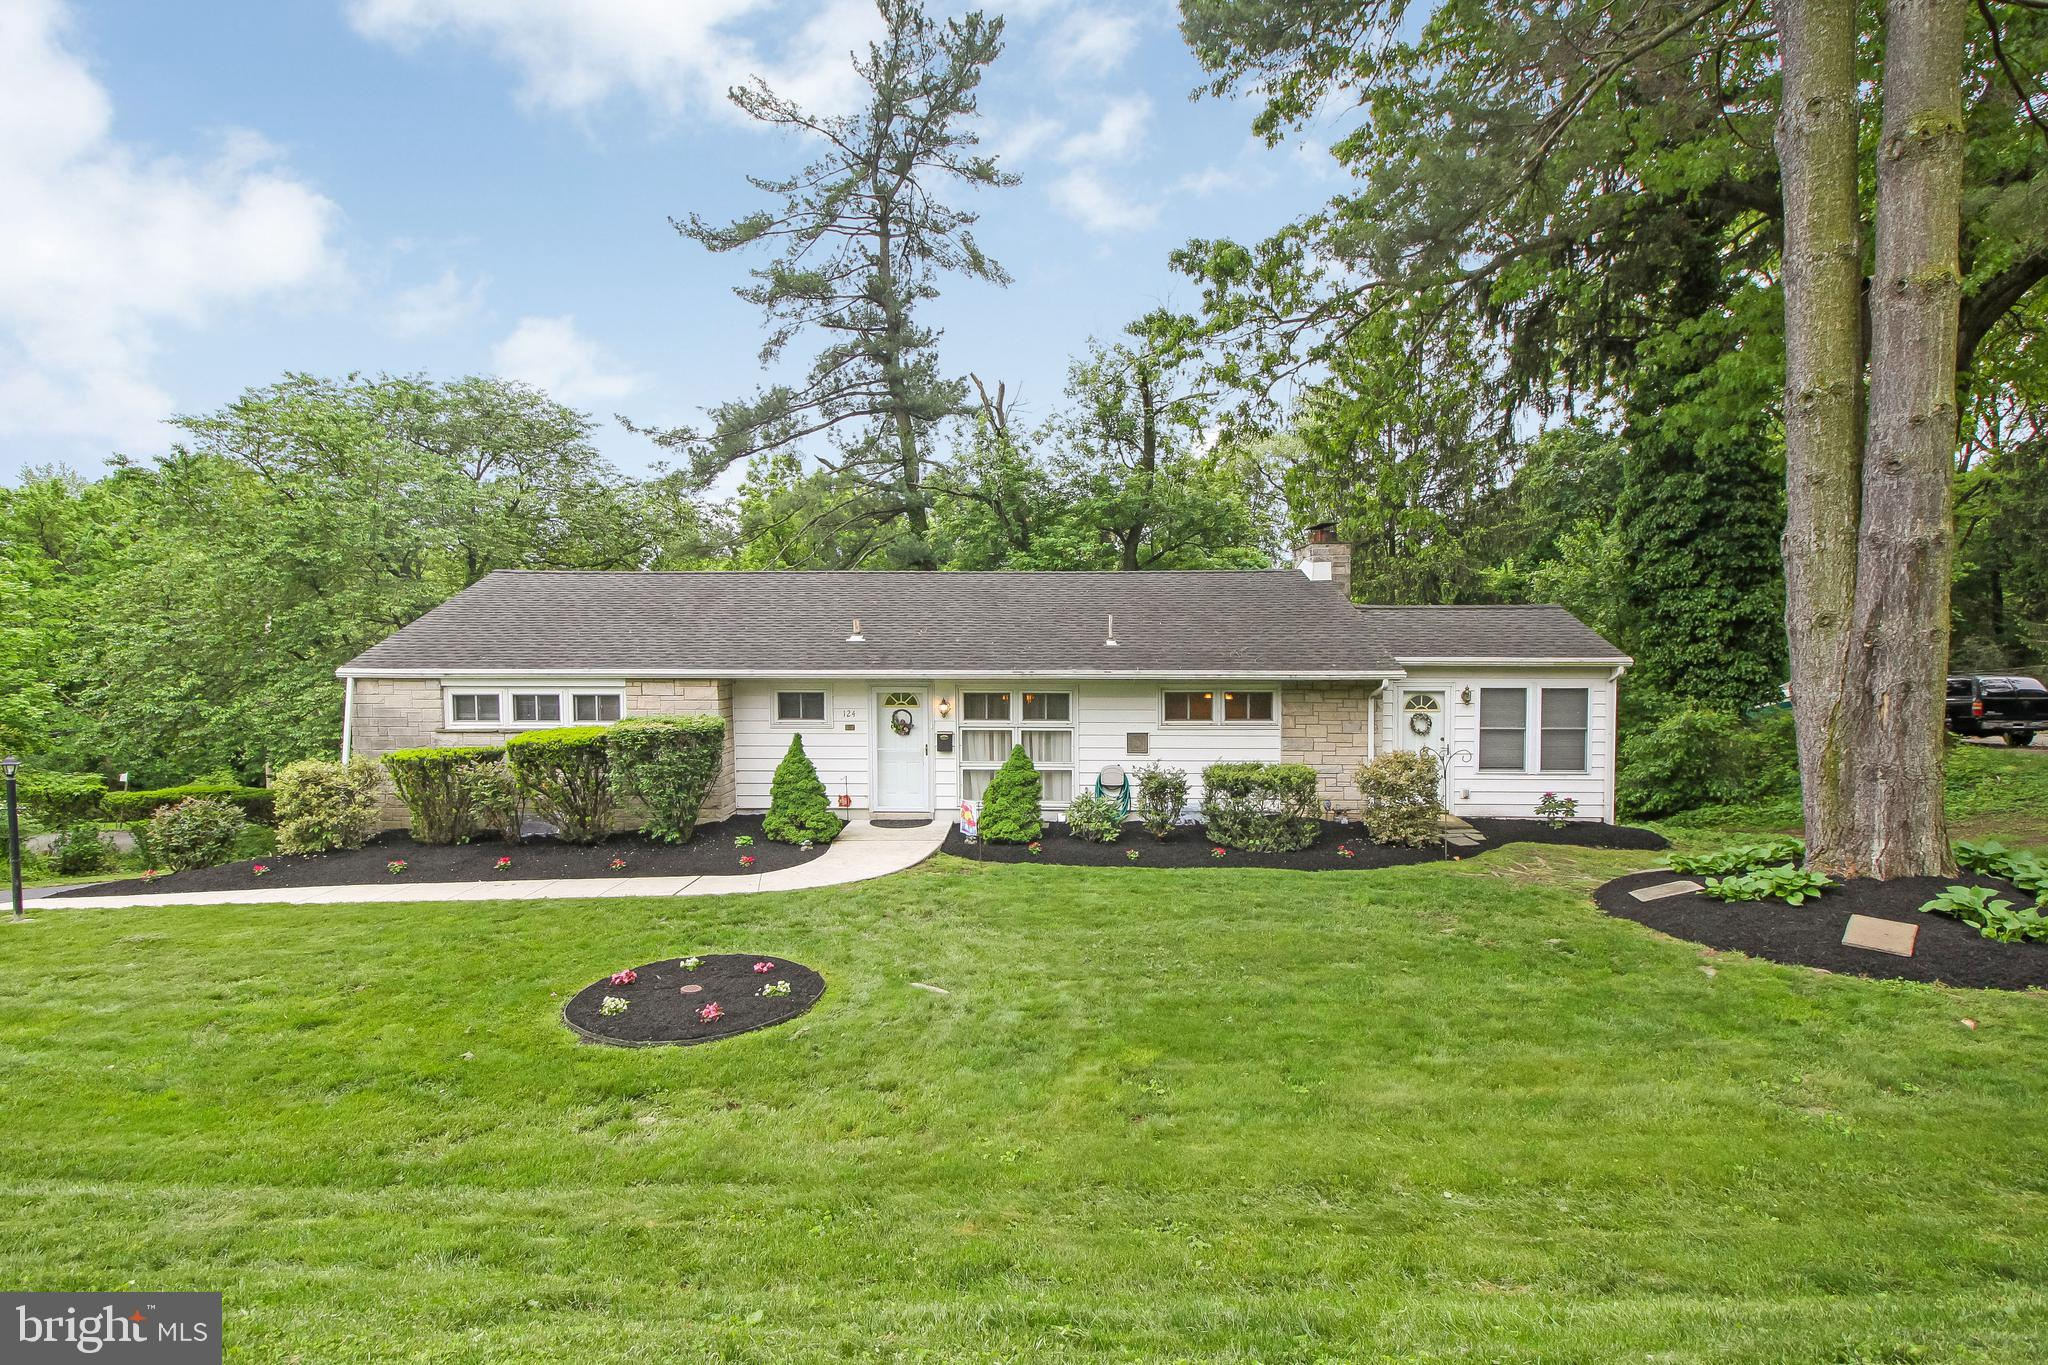 One floor living in desirable Springfield Township is waiting for you! Situated on a large 105 x 160 lot with views of trees and deer, but convenient to everything! Boasting over 1800 sq ft of living space this rancher offers a flexible floor plan to fit your needs! Upon entering you are greeted by the dining room that could be your entrance foyers that leads you into the generous living room with loads of windows and beautiful views complete with a gas fireplace. The kitchen has been updated with granite counters with an adjoining addition that could become your dining space or remain as a cozy den surrounded by windows and outside access. Completing the main level are 3 nicely sized bedrooms and hall ceramic tile bath. The basement offers additional living space with even more windows to take in the natural light and views, convenient half bath, spacious laundry/mechanical/storage room, as well as inside access to the large 23x24 two (2) car garage. Outside the basement family room is a patio to further enjoy the setting or your next get-together. Additional amenities include large driveway with parking for multiple cars, dimensional shingle roof and windows 2008, boiler 2004, oil tank 3 years old (gas in home if preferred), close proximity to transportation, major arteries and highways, replacement windows, and so much more!